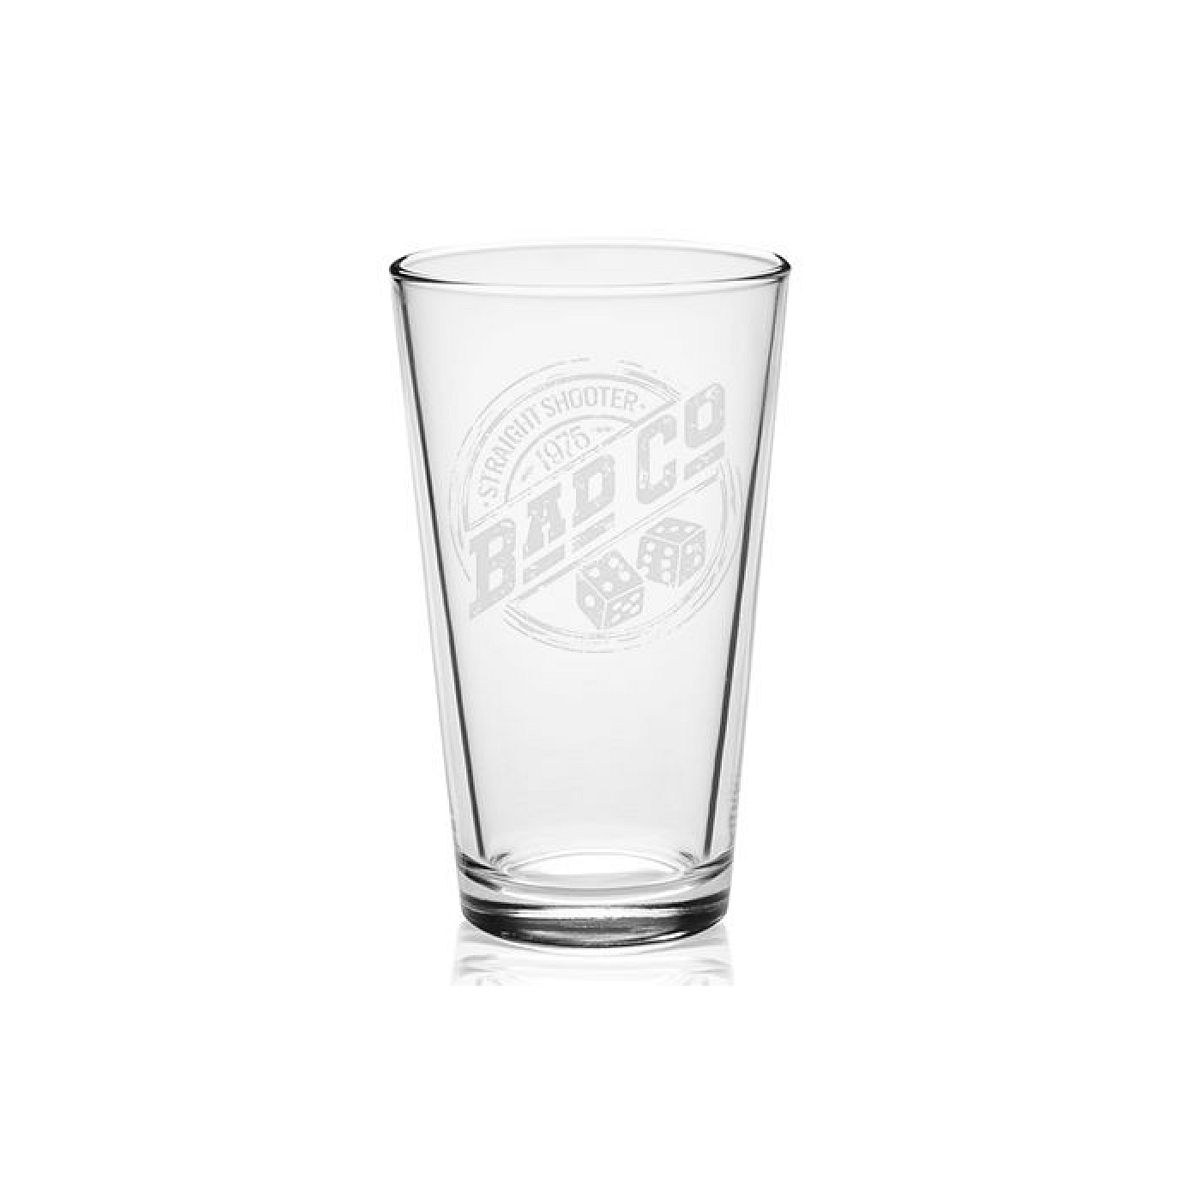 Straight Shooter 1975 Laser-Etched Pint